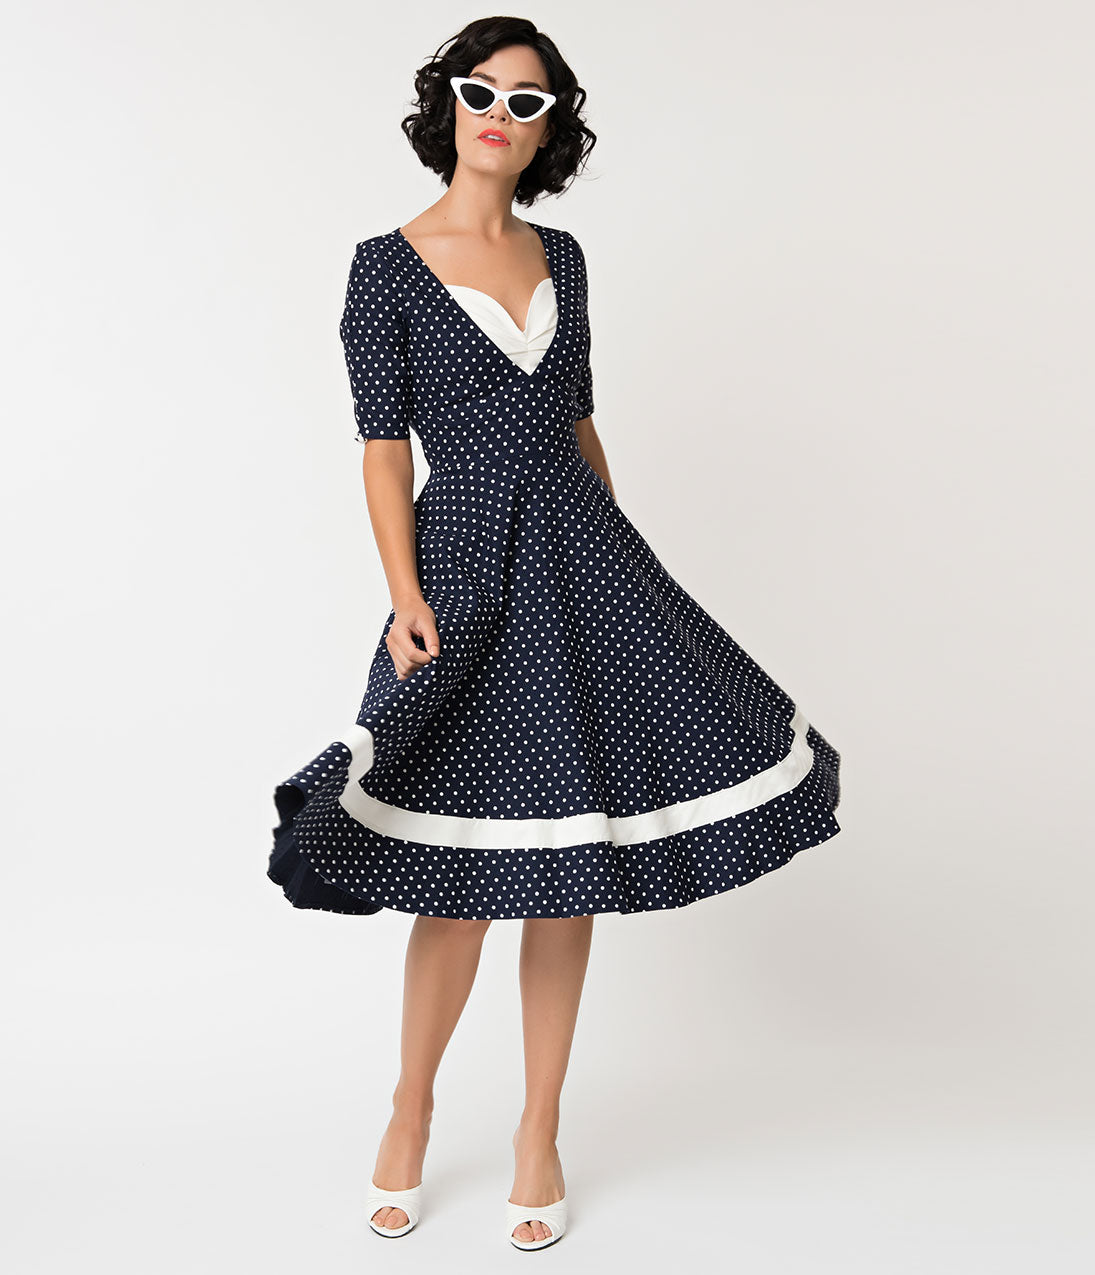 1950s Housewife Dress | 50s Day Dresses Unique Vintage 1950S Style Navy  White Dotted Sleeved Serena Swing Dress $74.00 AT vintagedancer.com